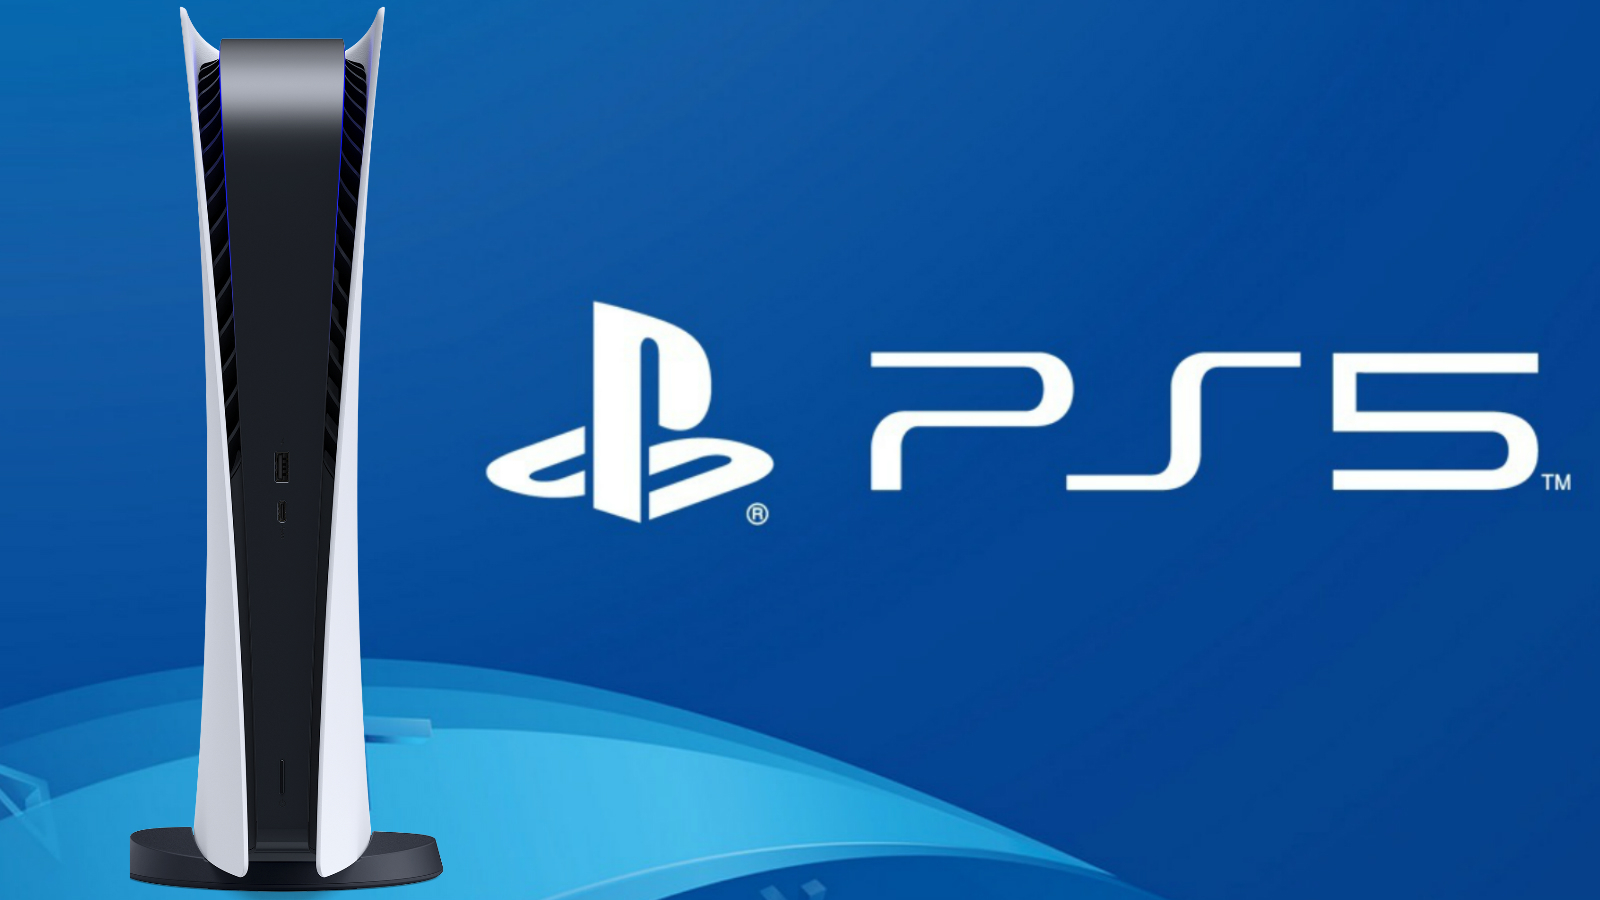 PS5 Logo and Console